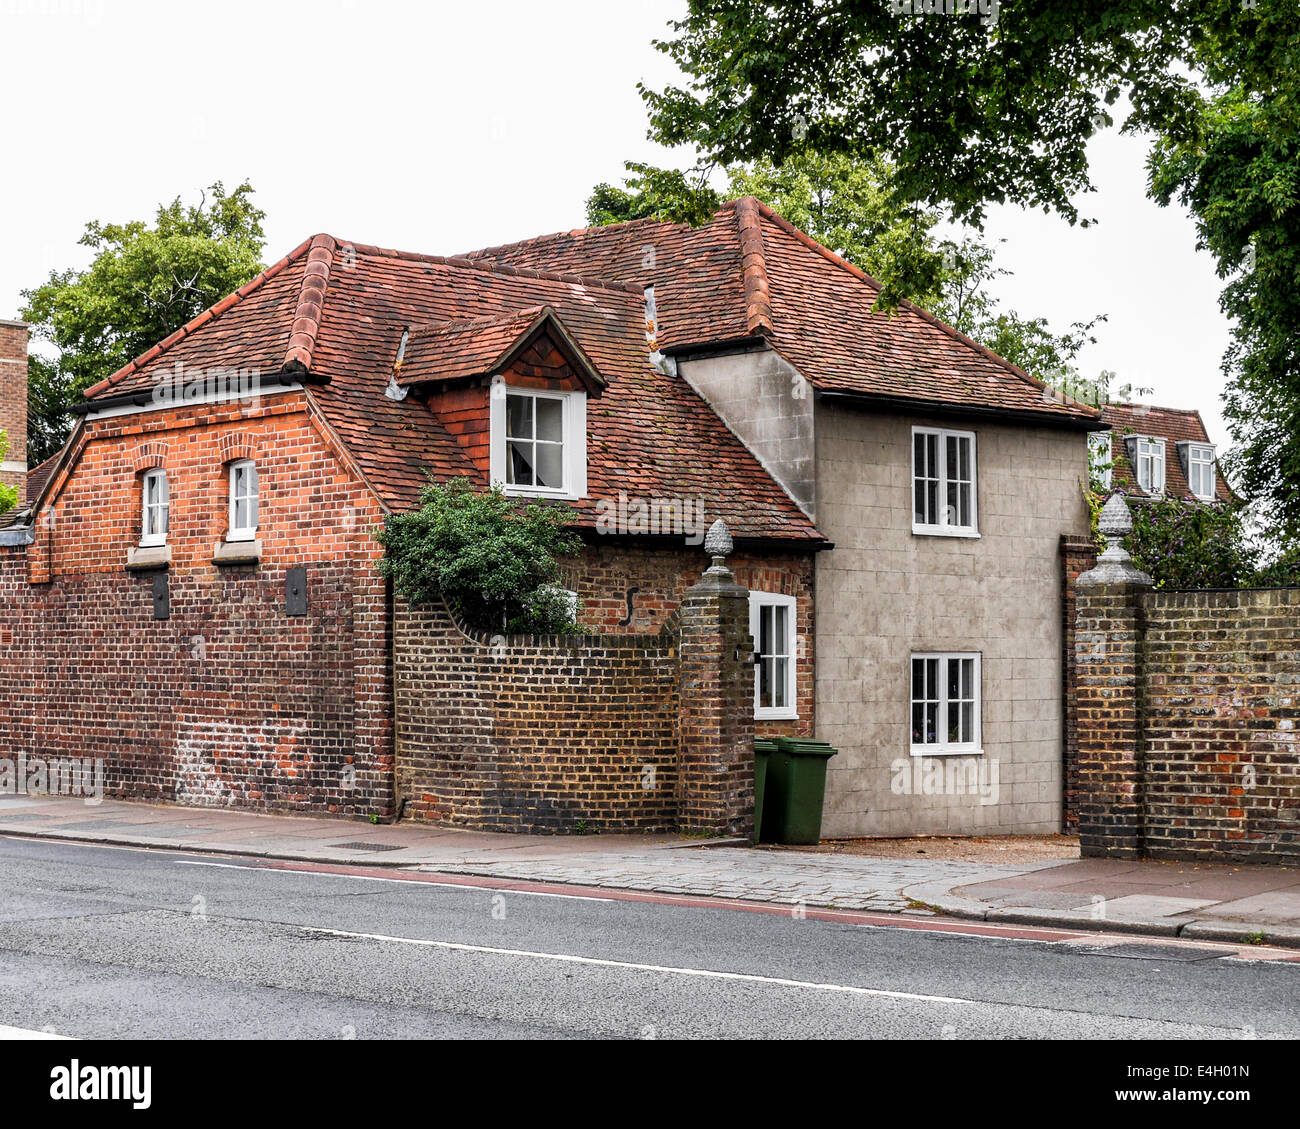 Lovely Historic red brick house with tiled roof in Twickenham, Greater  YF54